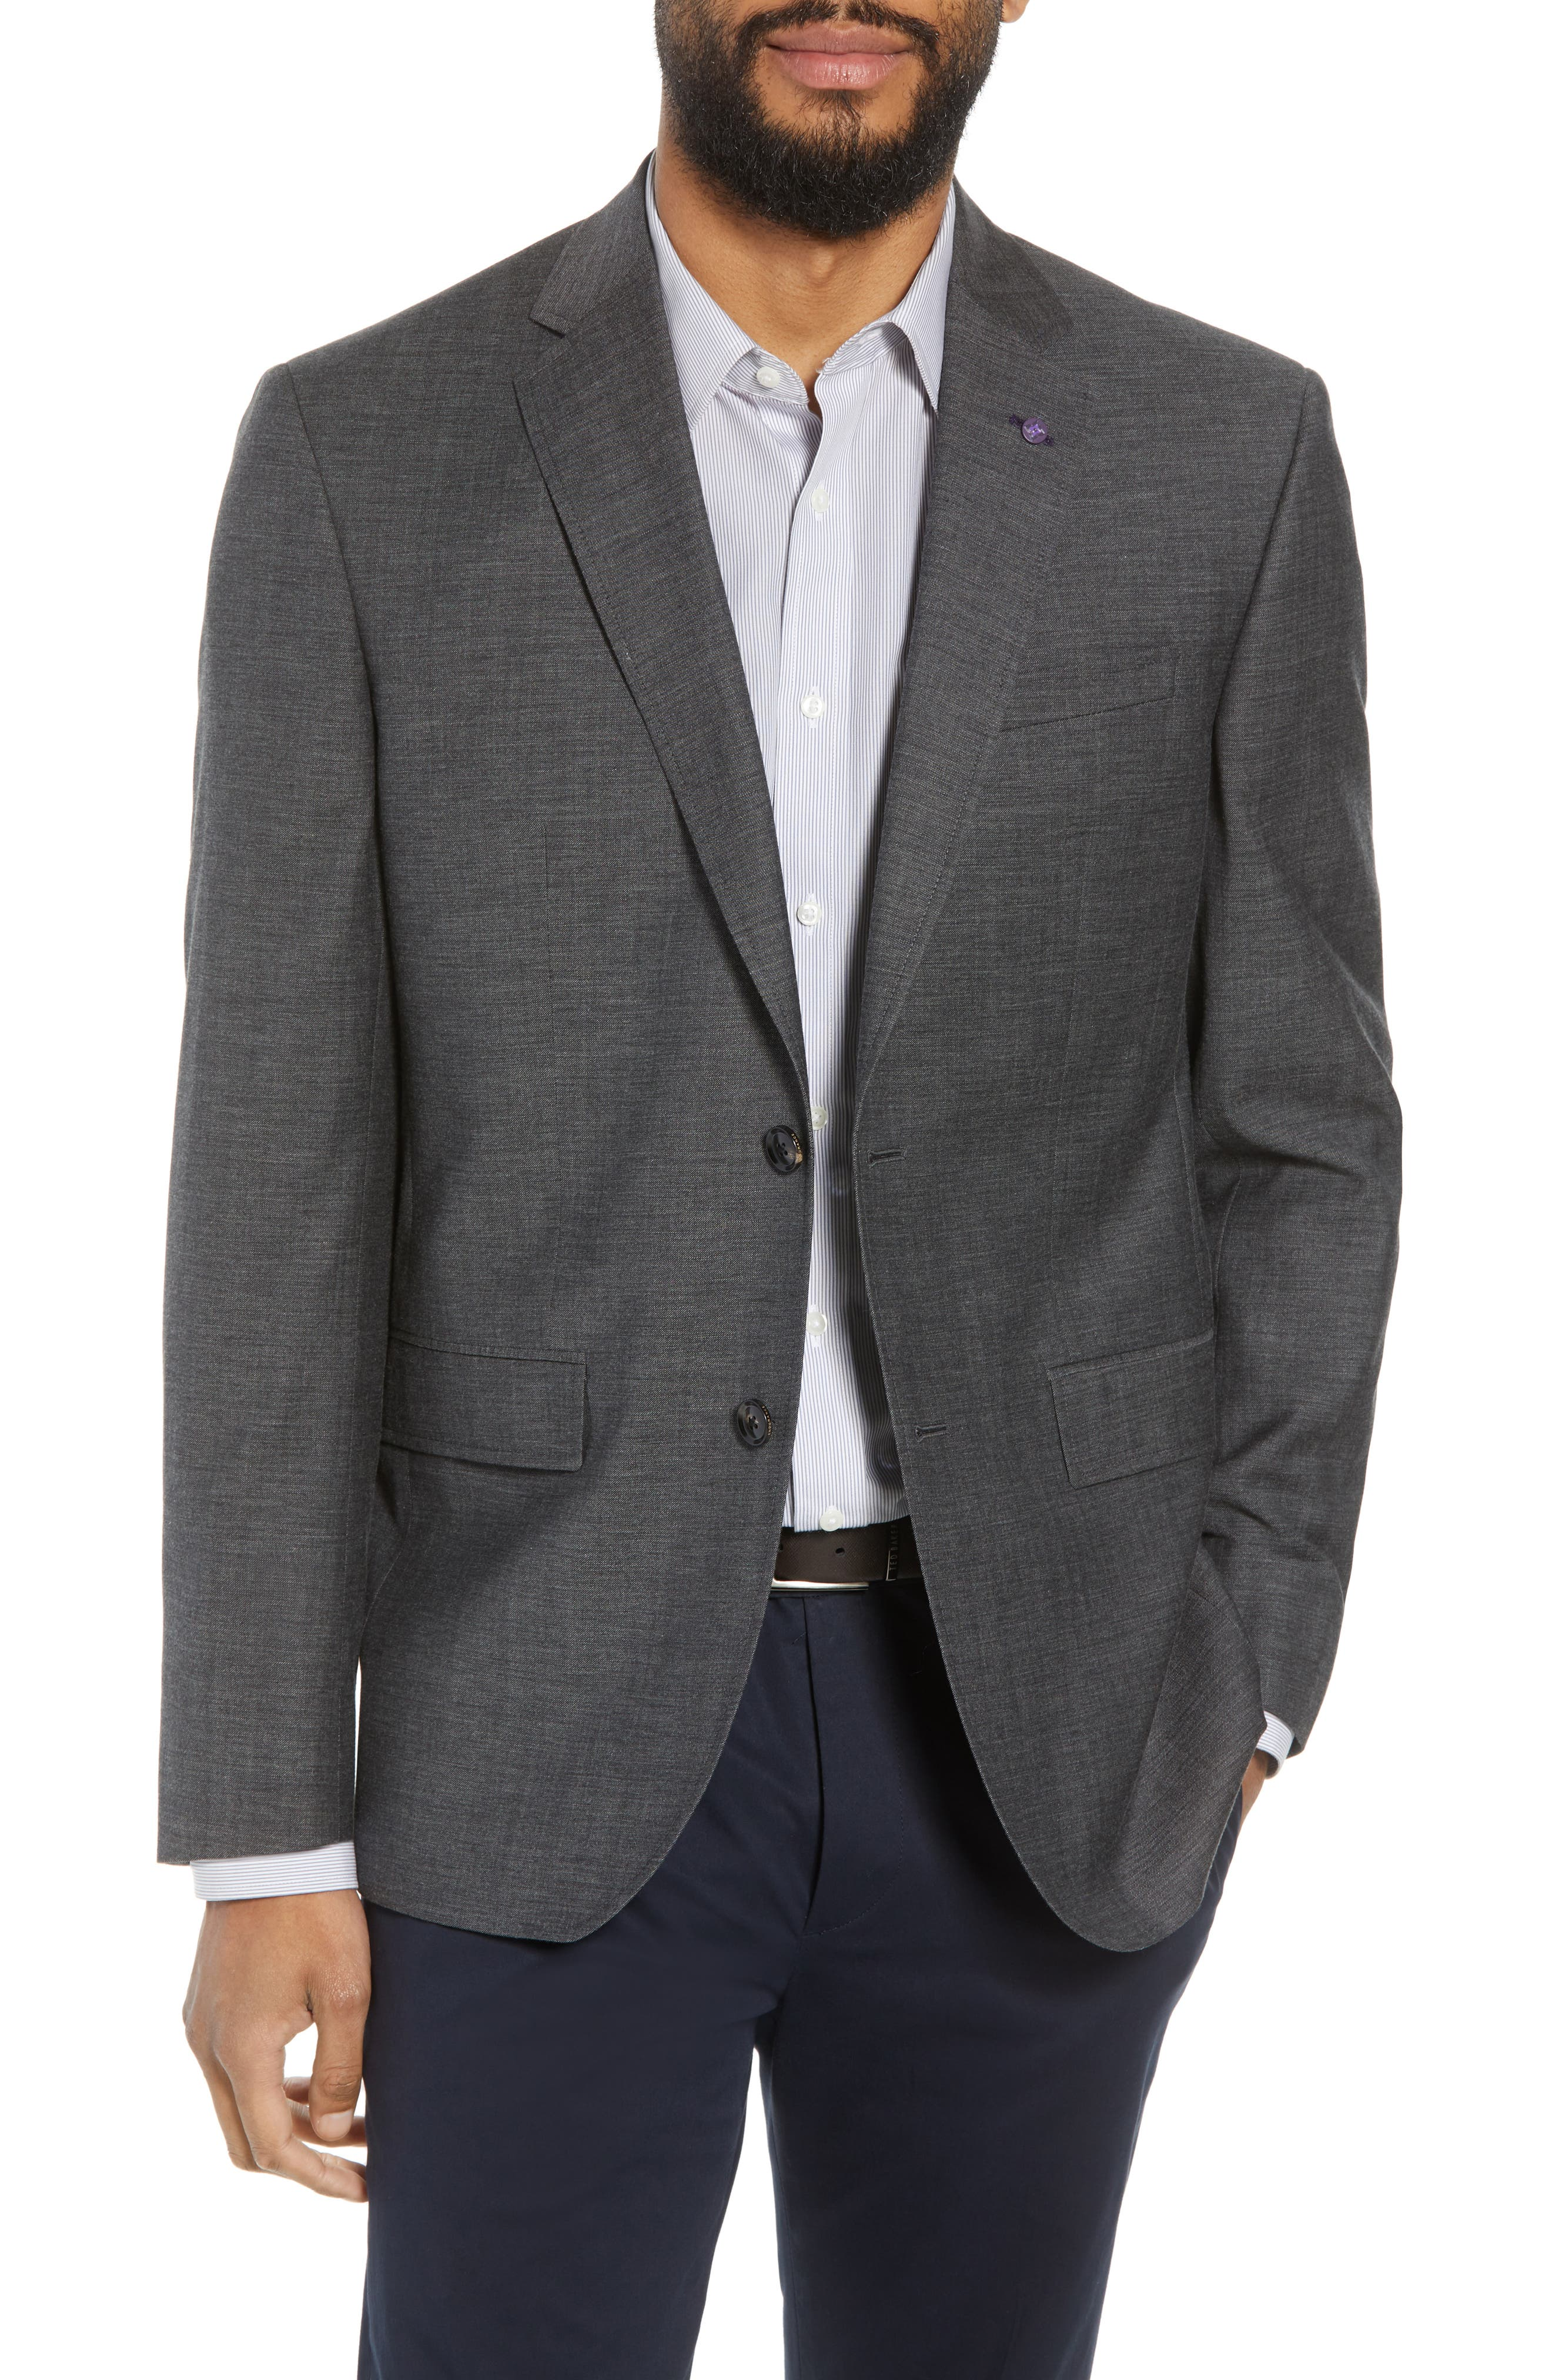 Jay Trim Fit Heathered Wool & Cotton Sport Coat,                         Main,                         color, 020